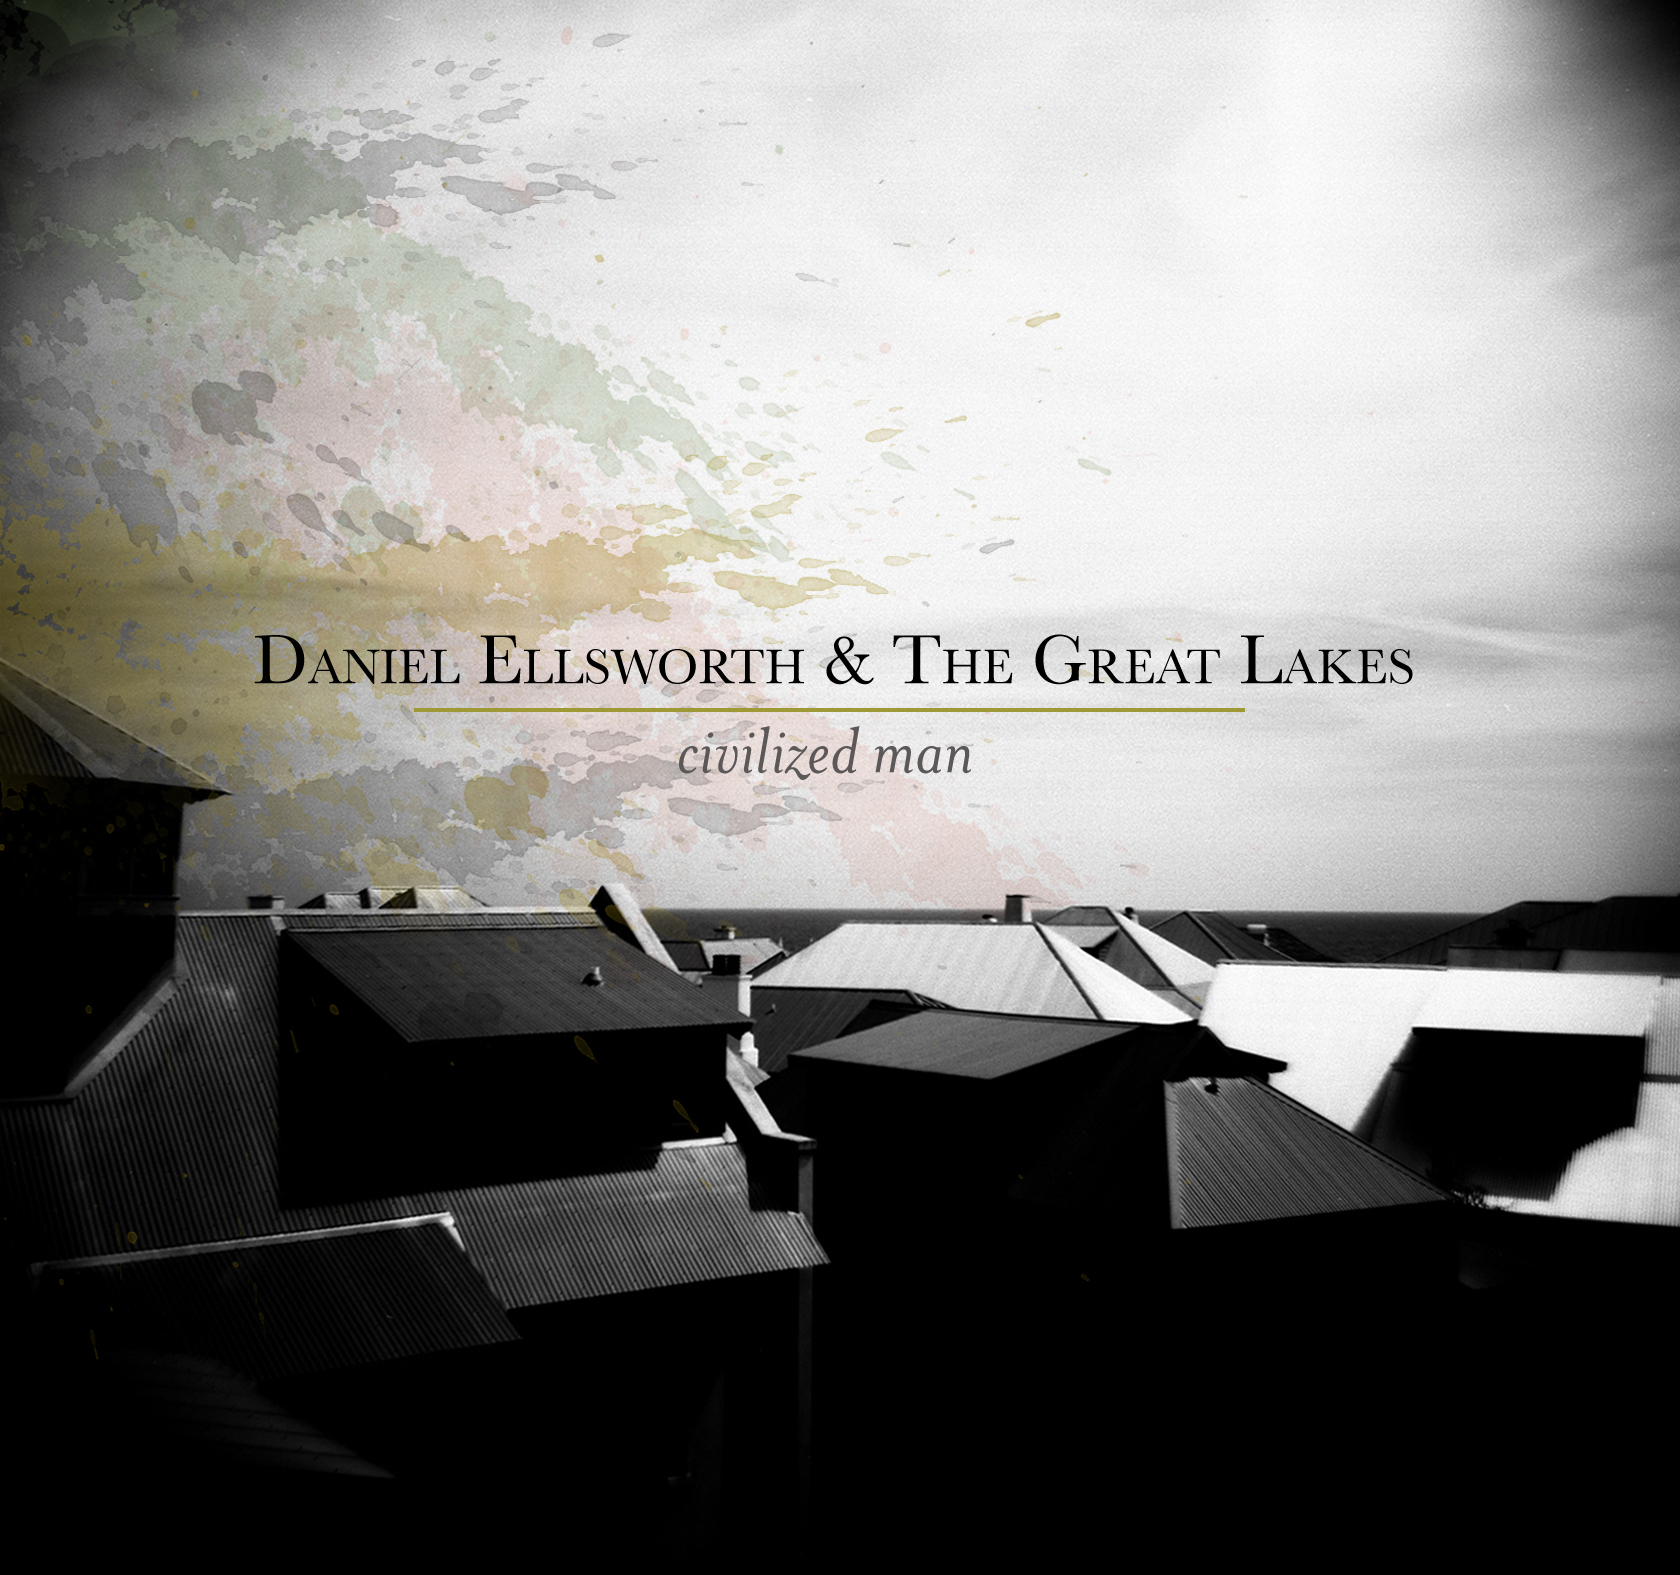 dan digipack cover.jpg